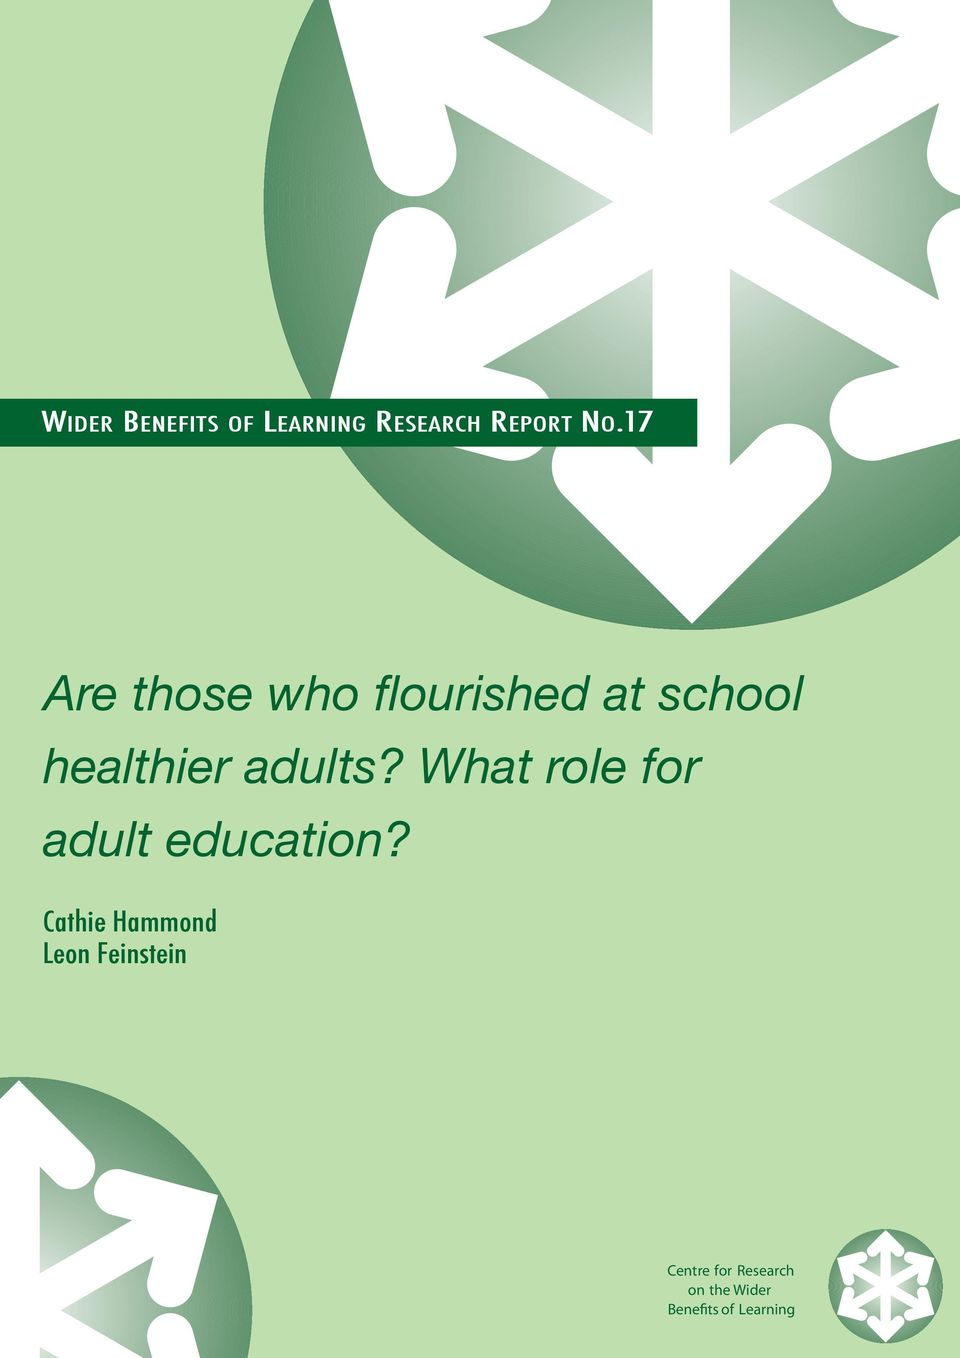 adults? What role for adult education?